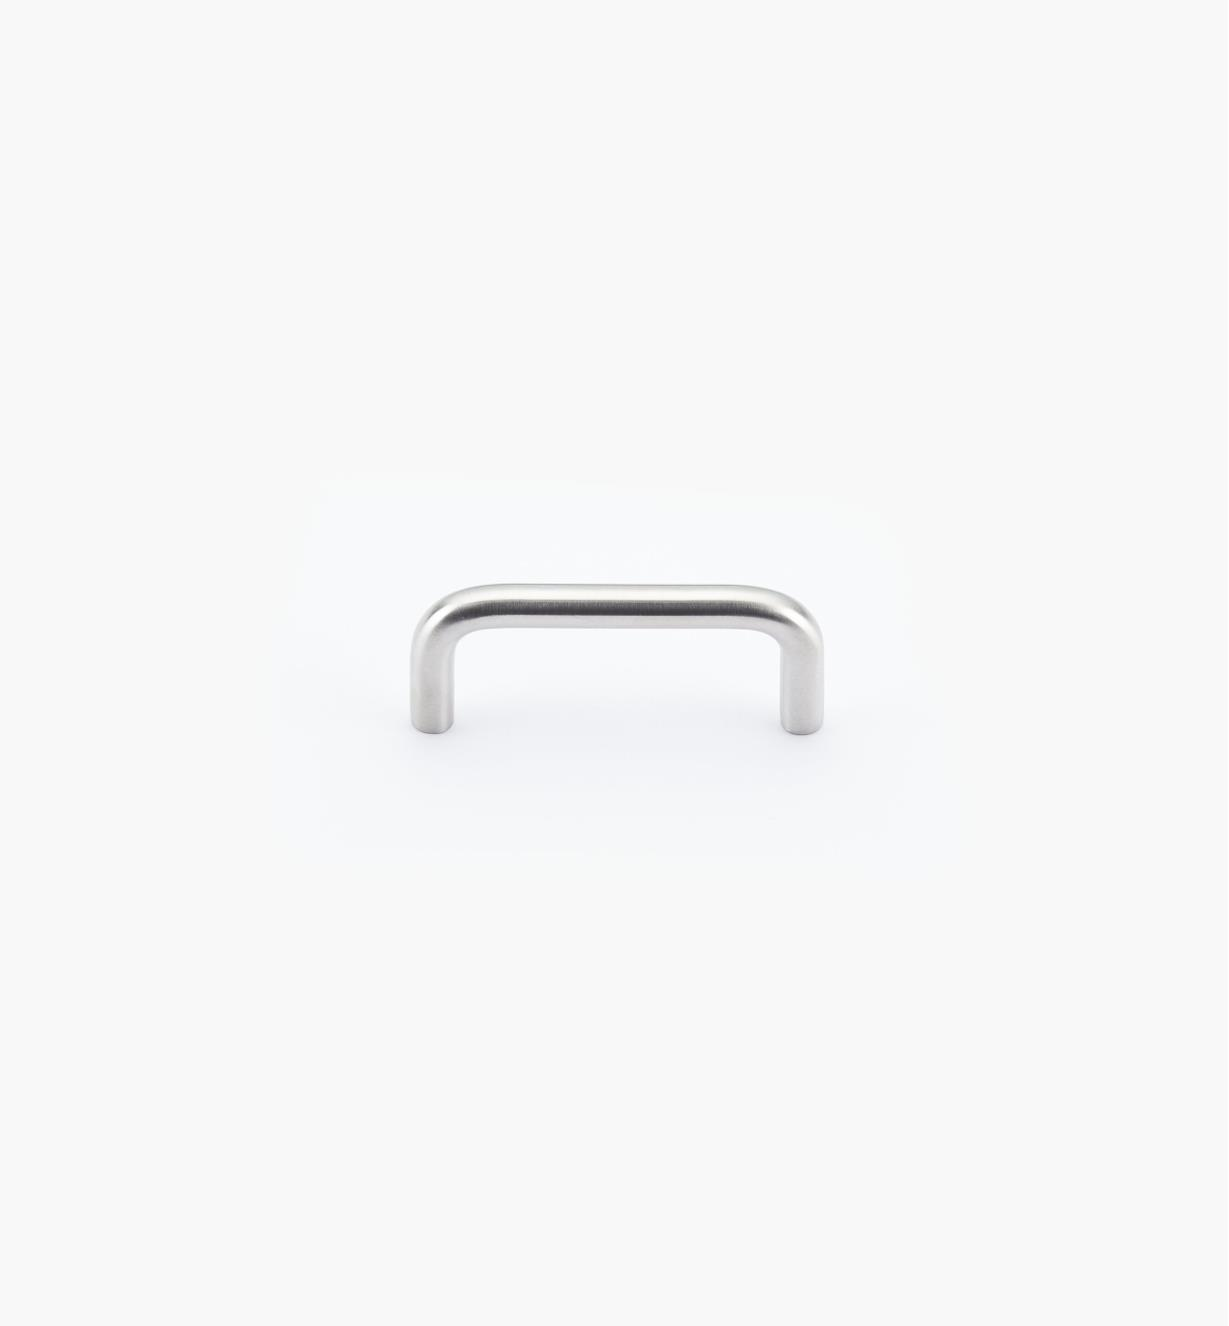 01W6805 - 8mm x 64mm Stainless-Steel Wire Pull